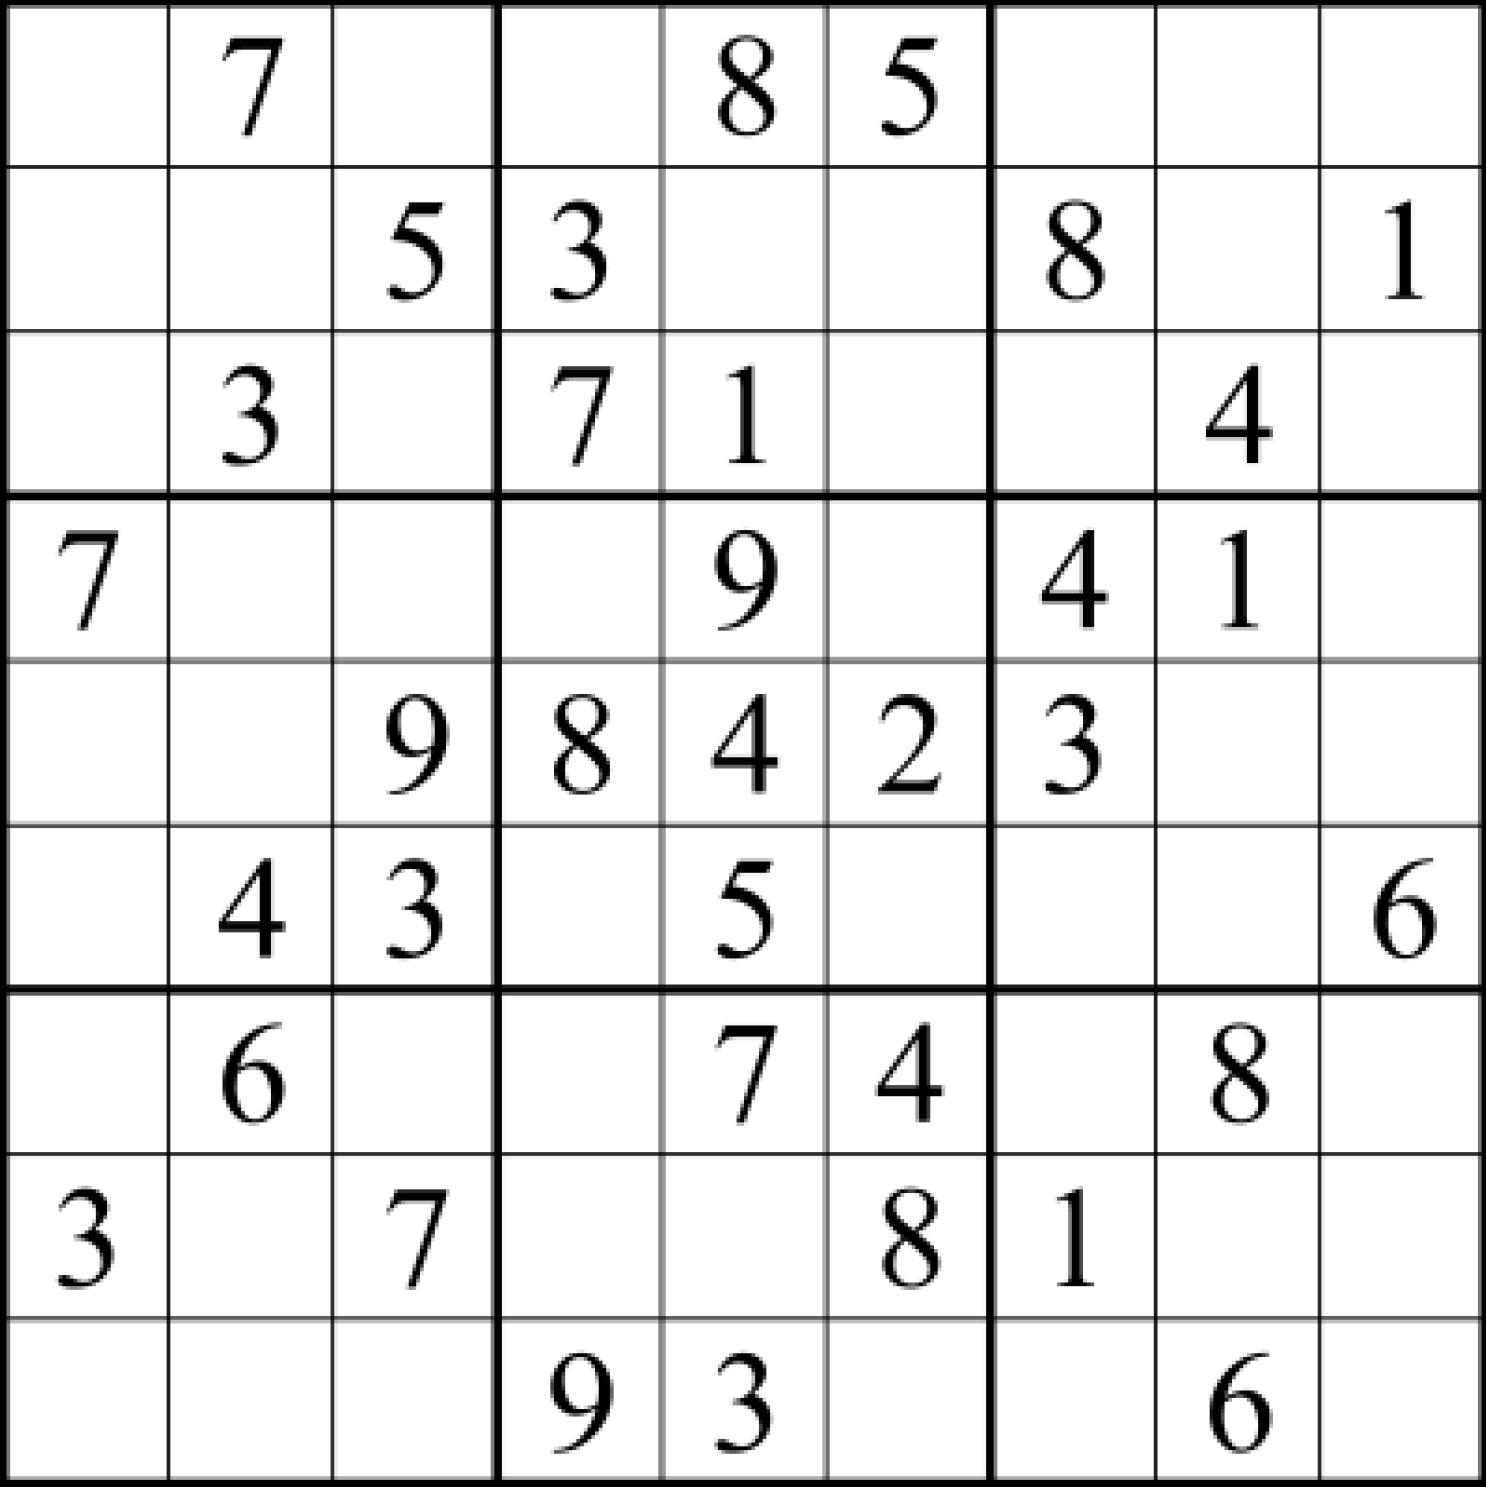 Sudoku Answers For Jan 13